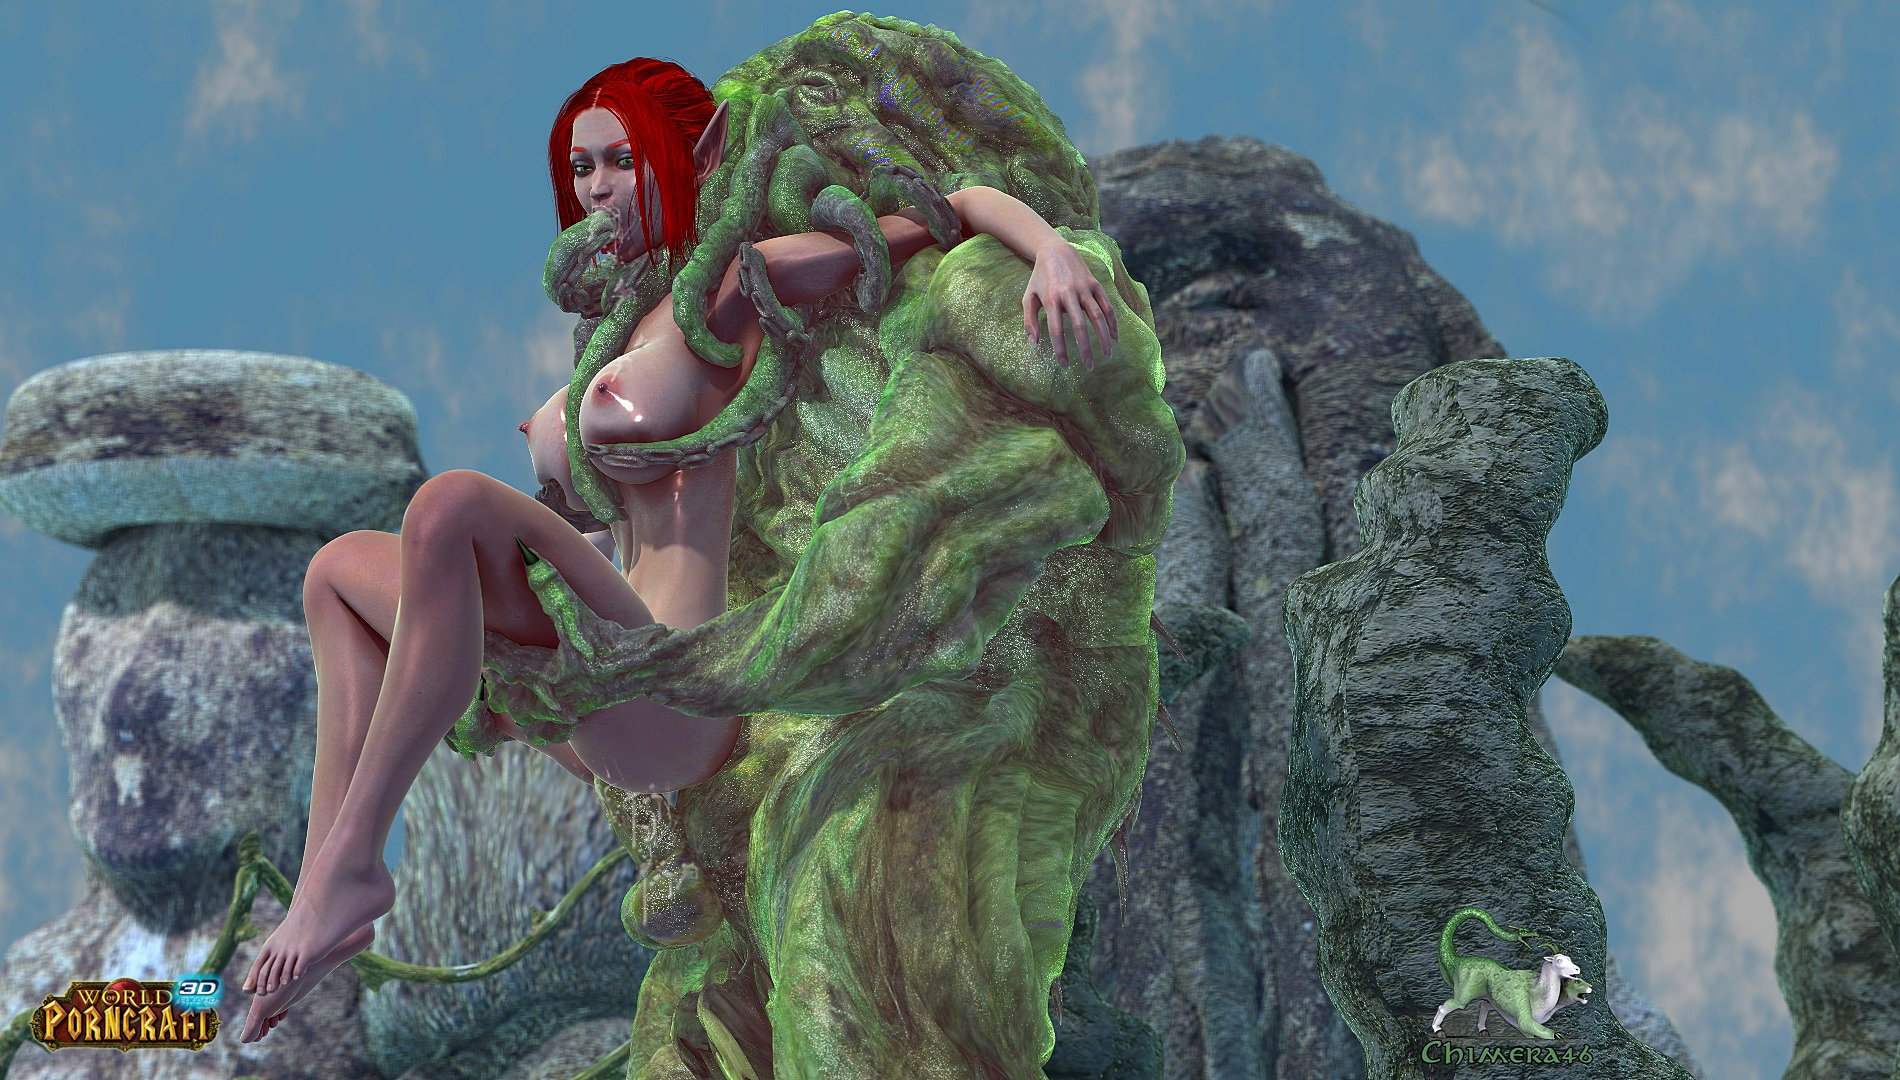 Monster fucks elf world of porncraft 3d adult curly wife